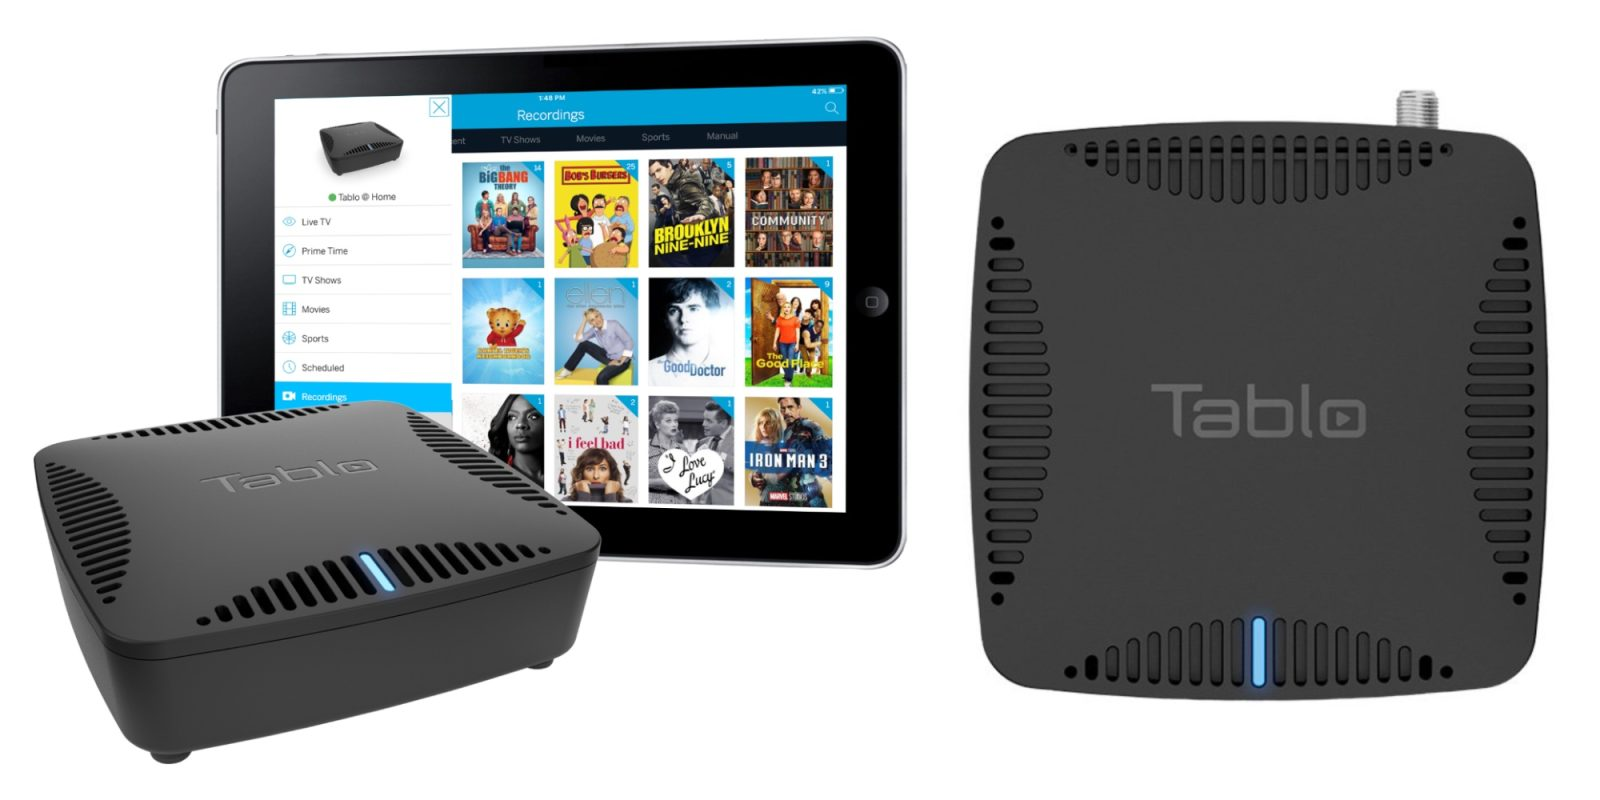 Best Ota Dvr 2020.Tablo Lite Ota Dvr Lets You Watch Or Record Two Shows At